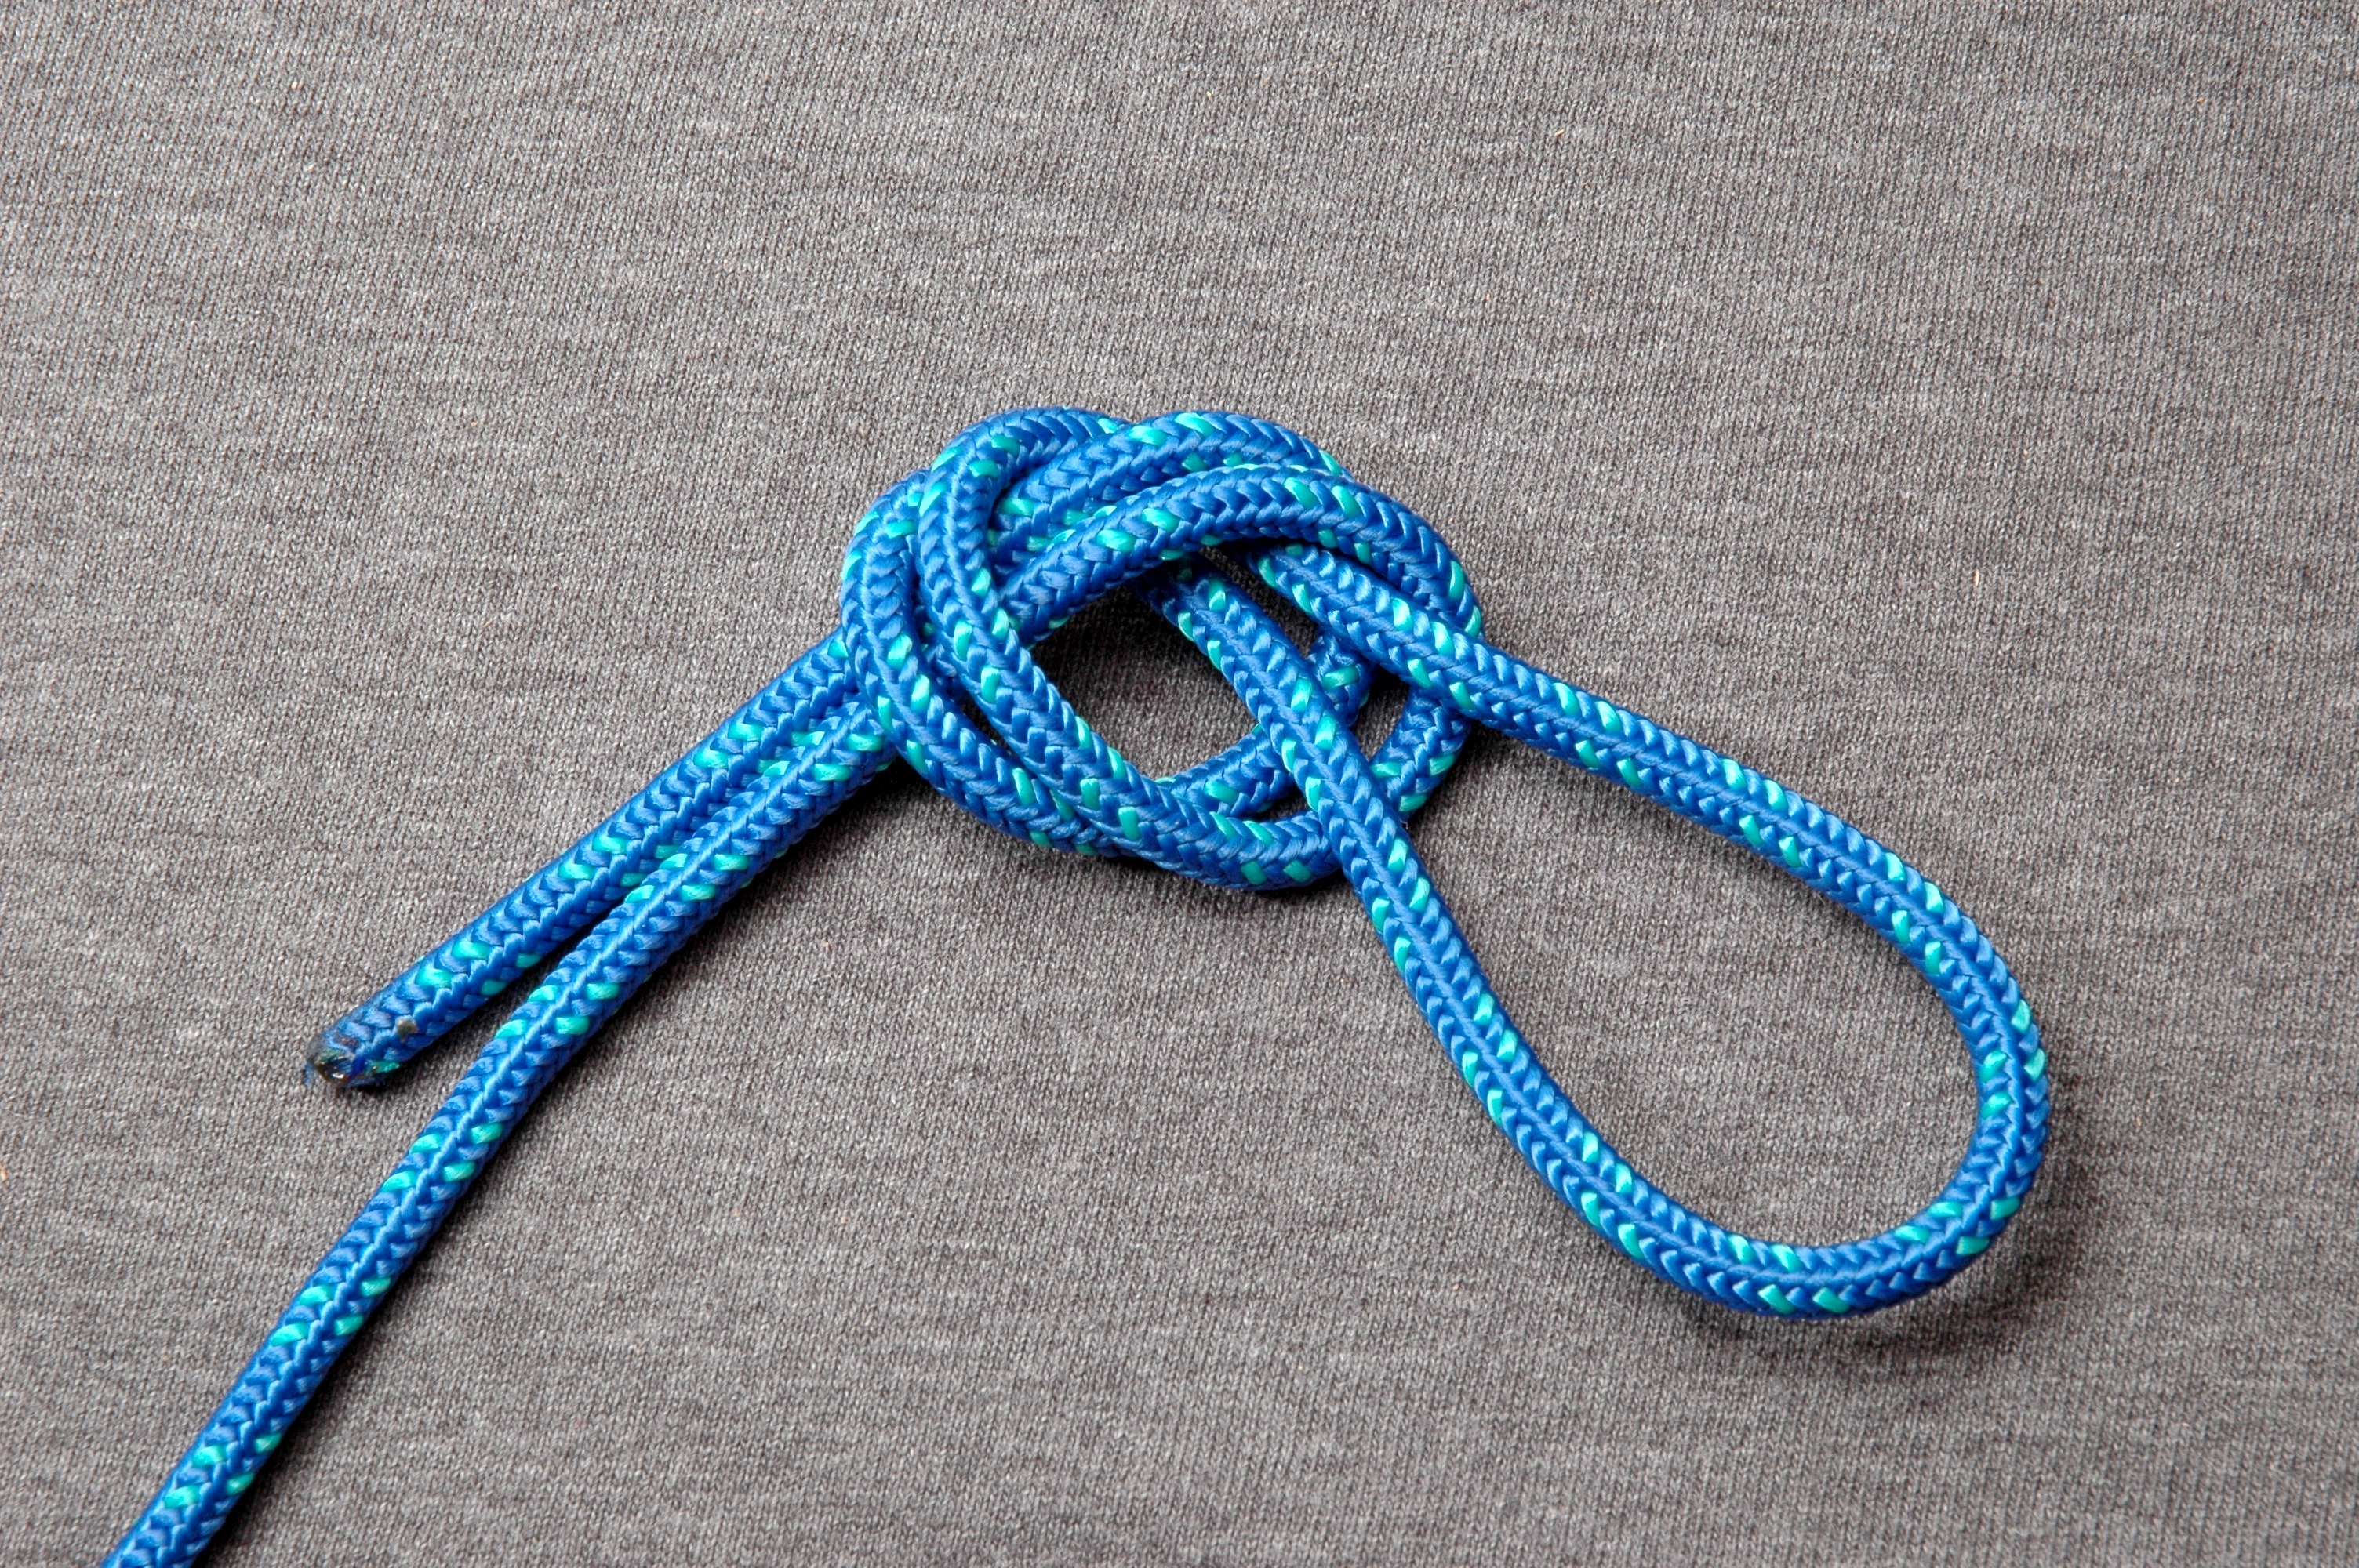 Overhand Loop Wikipedia Bowline Knot Diagram Of